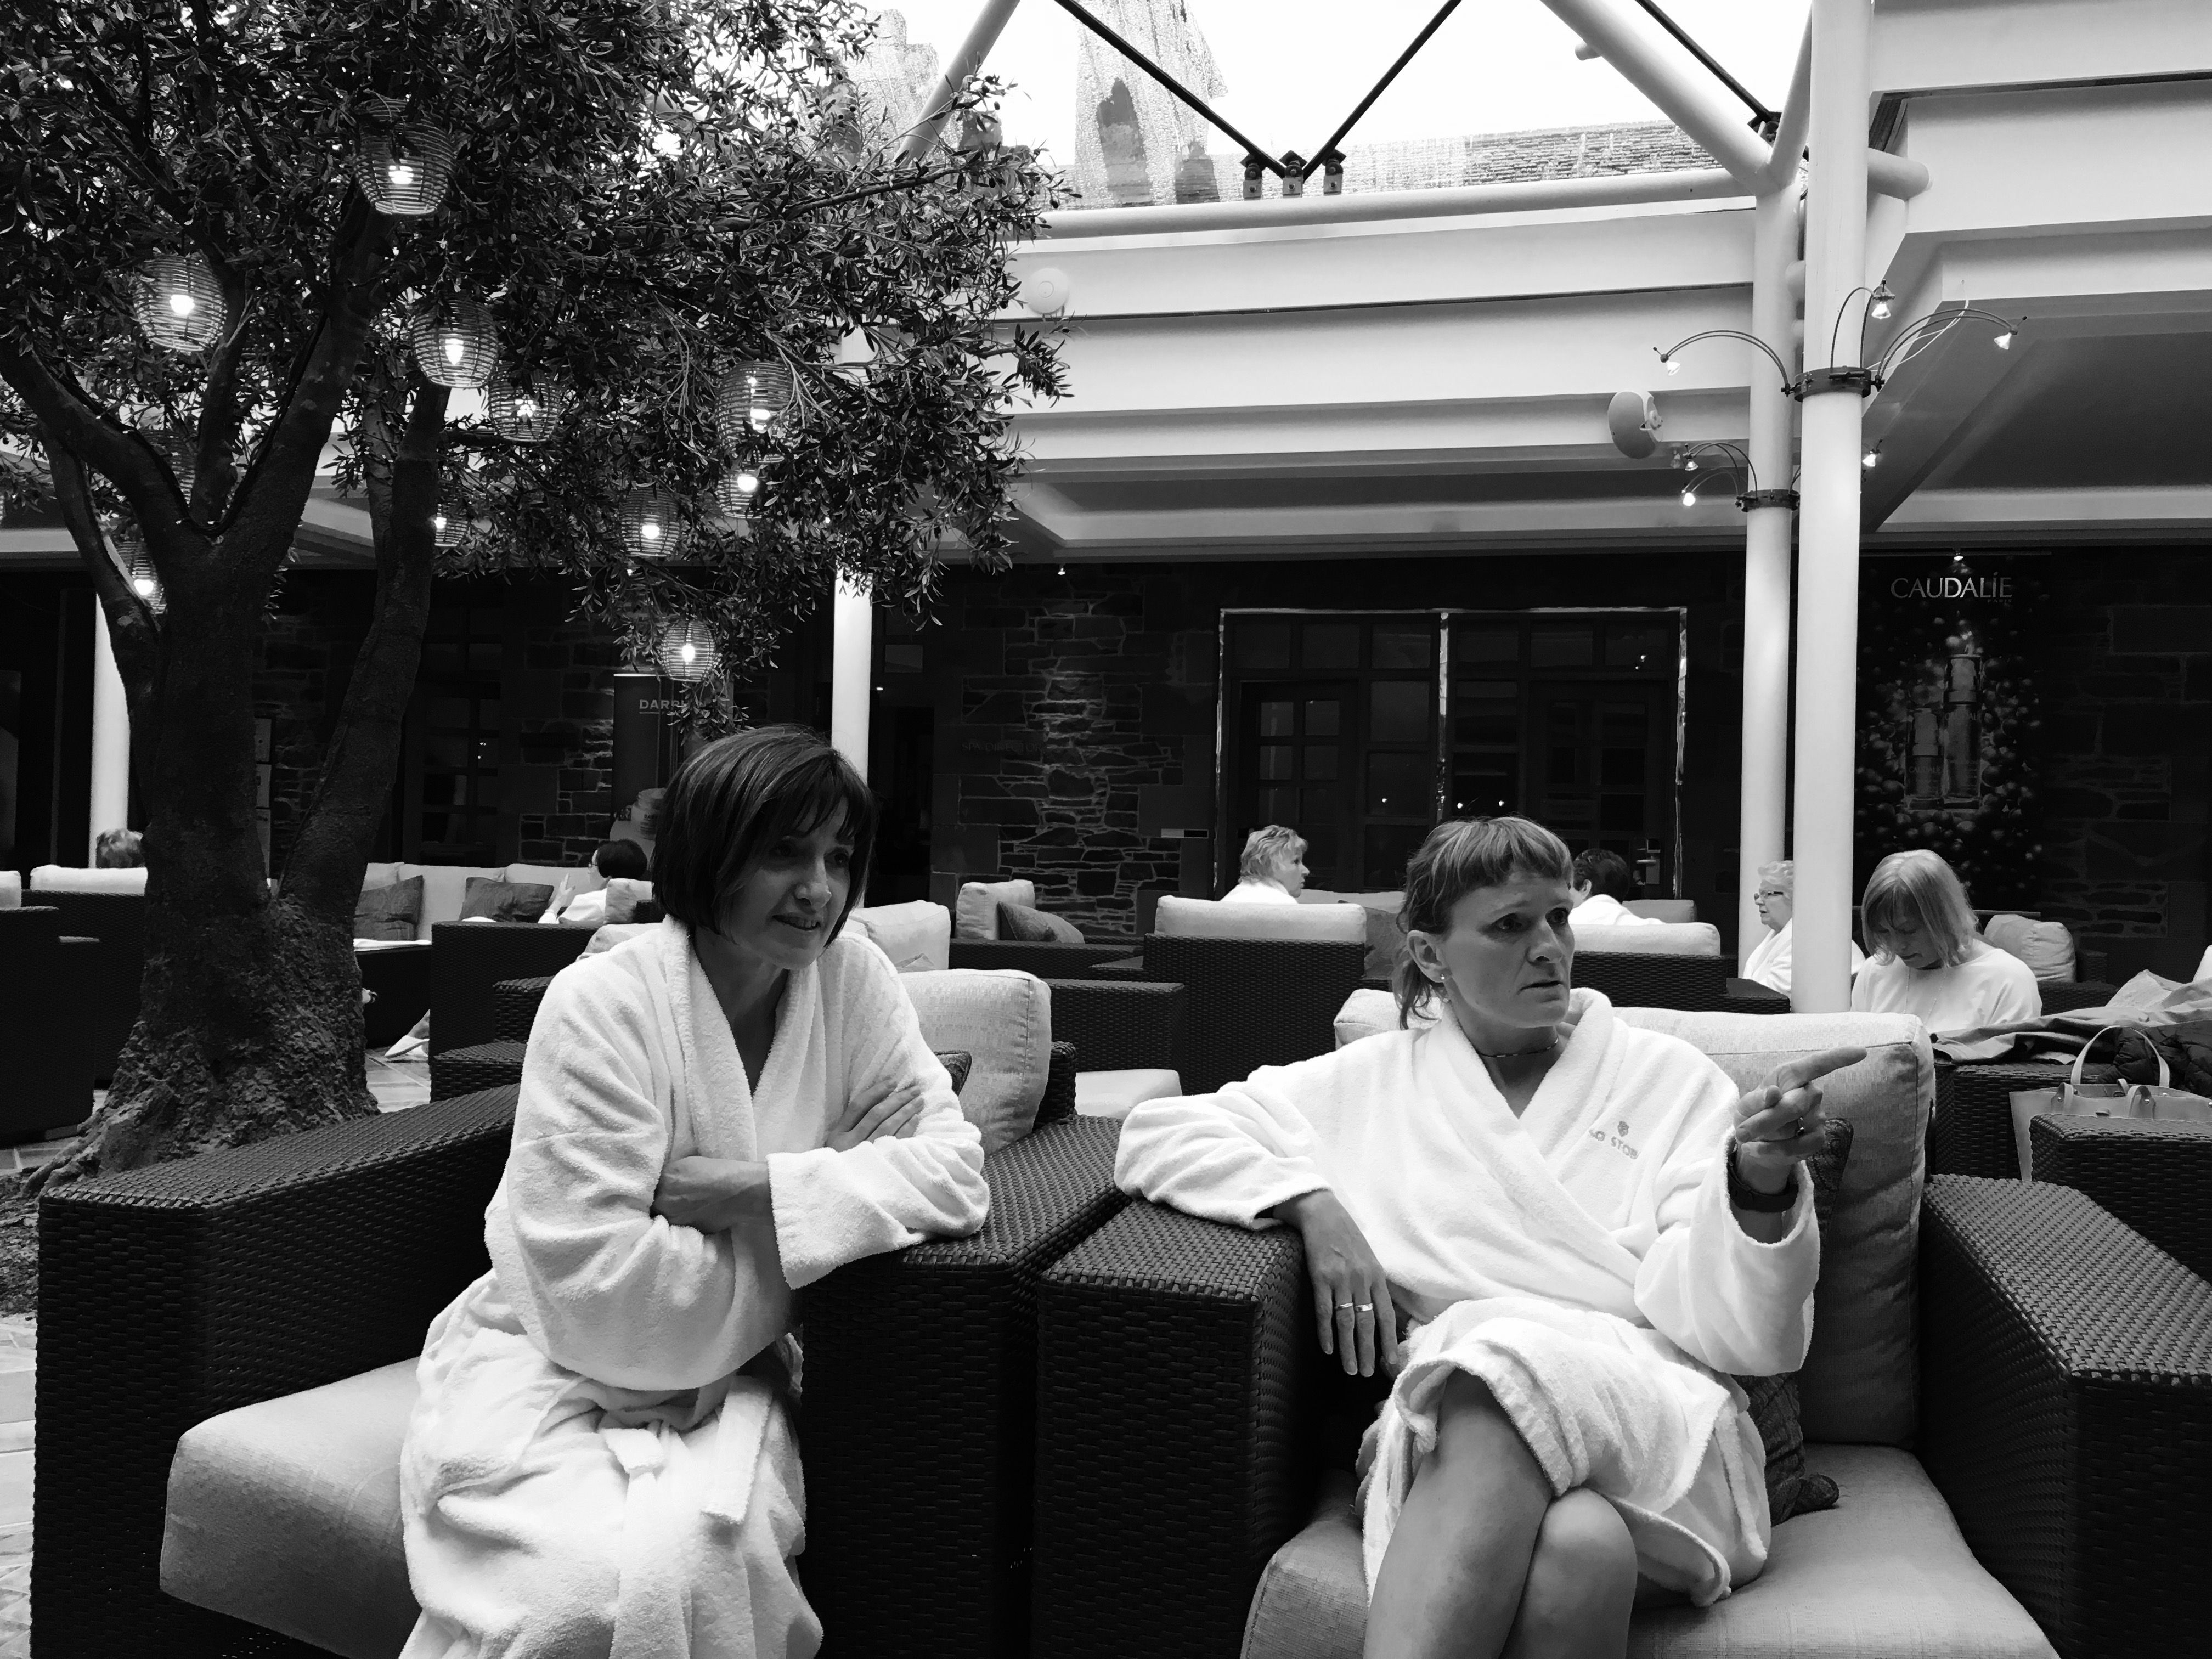 Ladies relaxing in white gowns in the lounge of a health spa